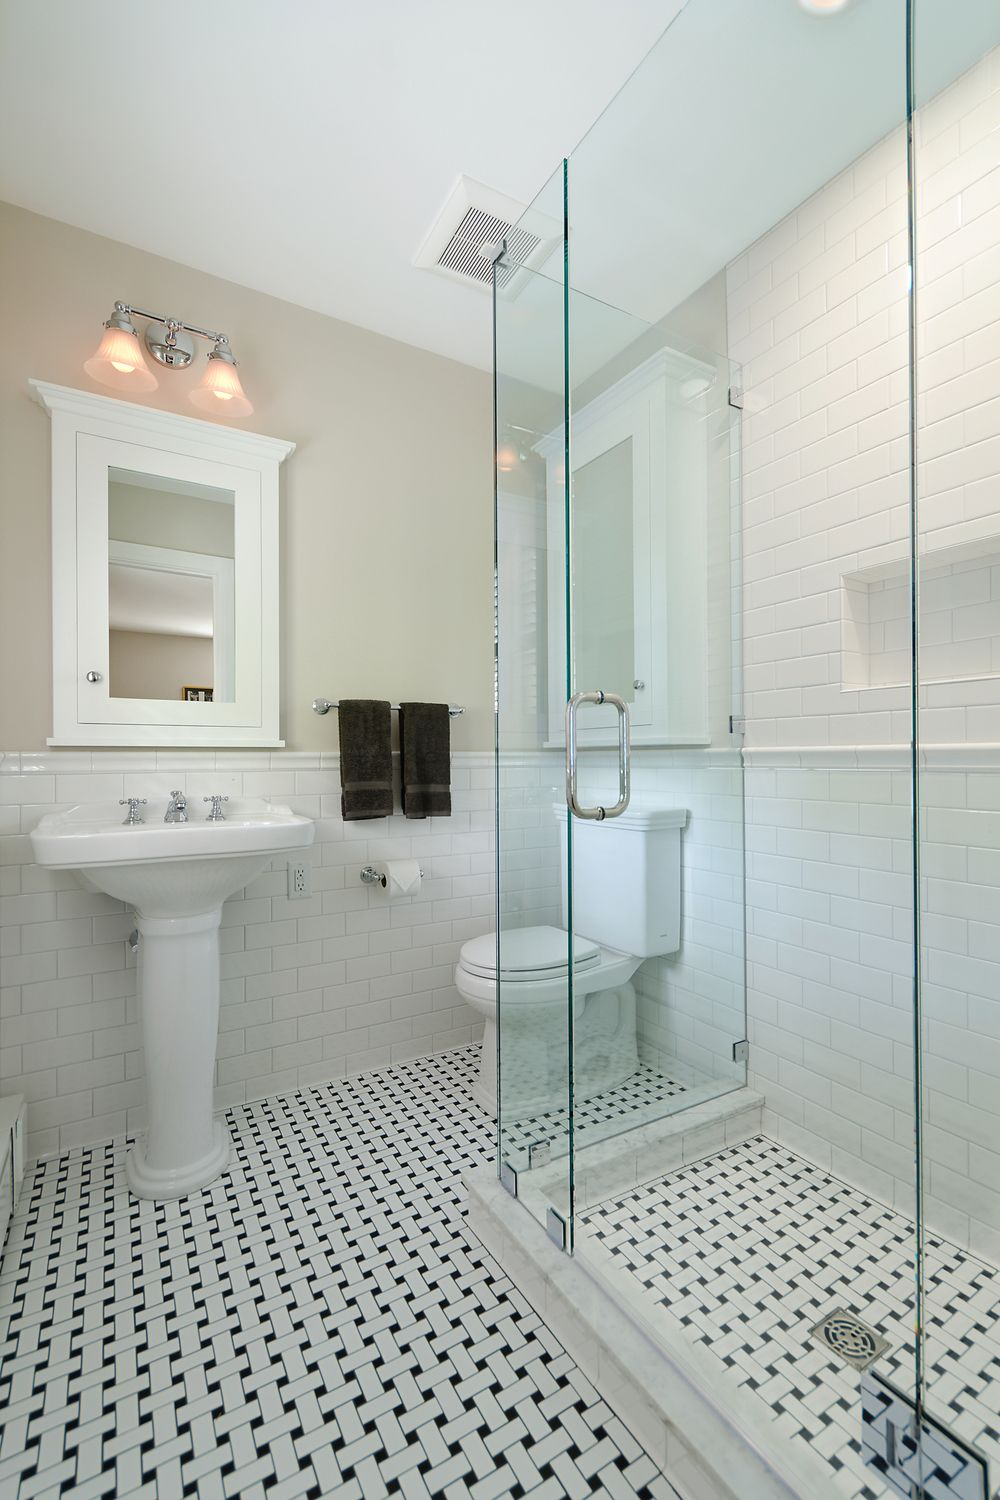 COTY award winning Bathroom! | Bath remodel, Tile ideas and Bathroom ...